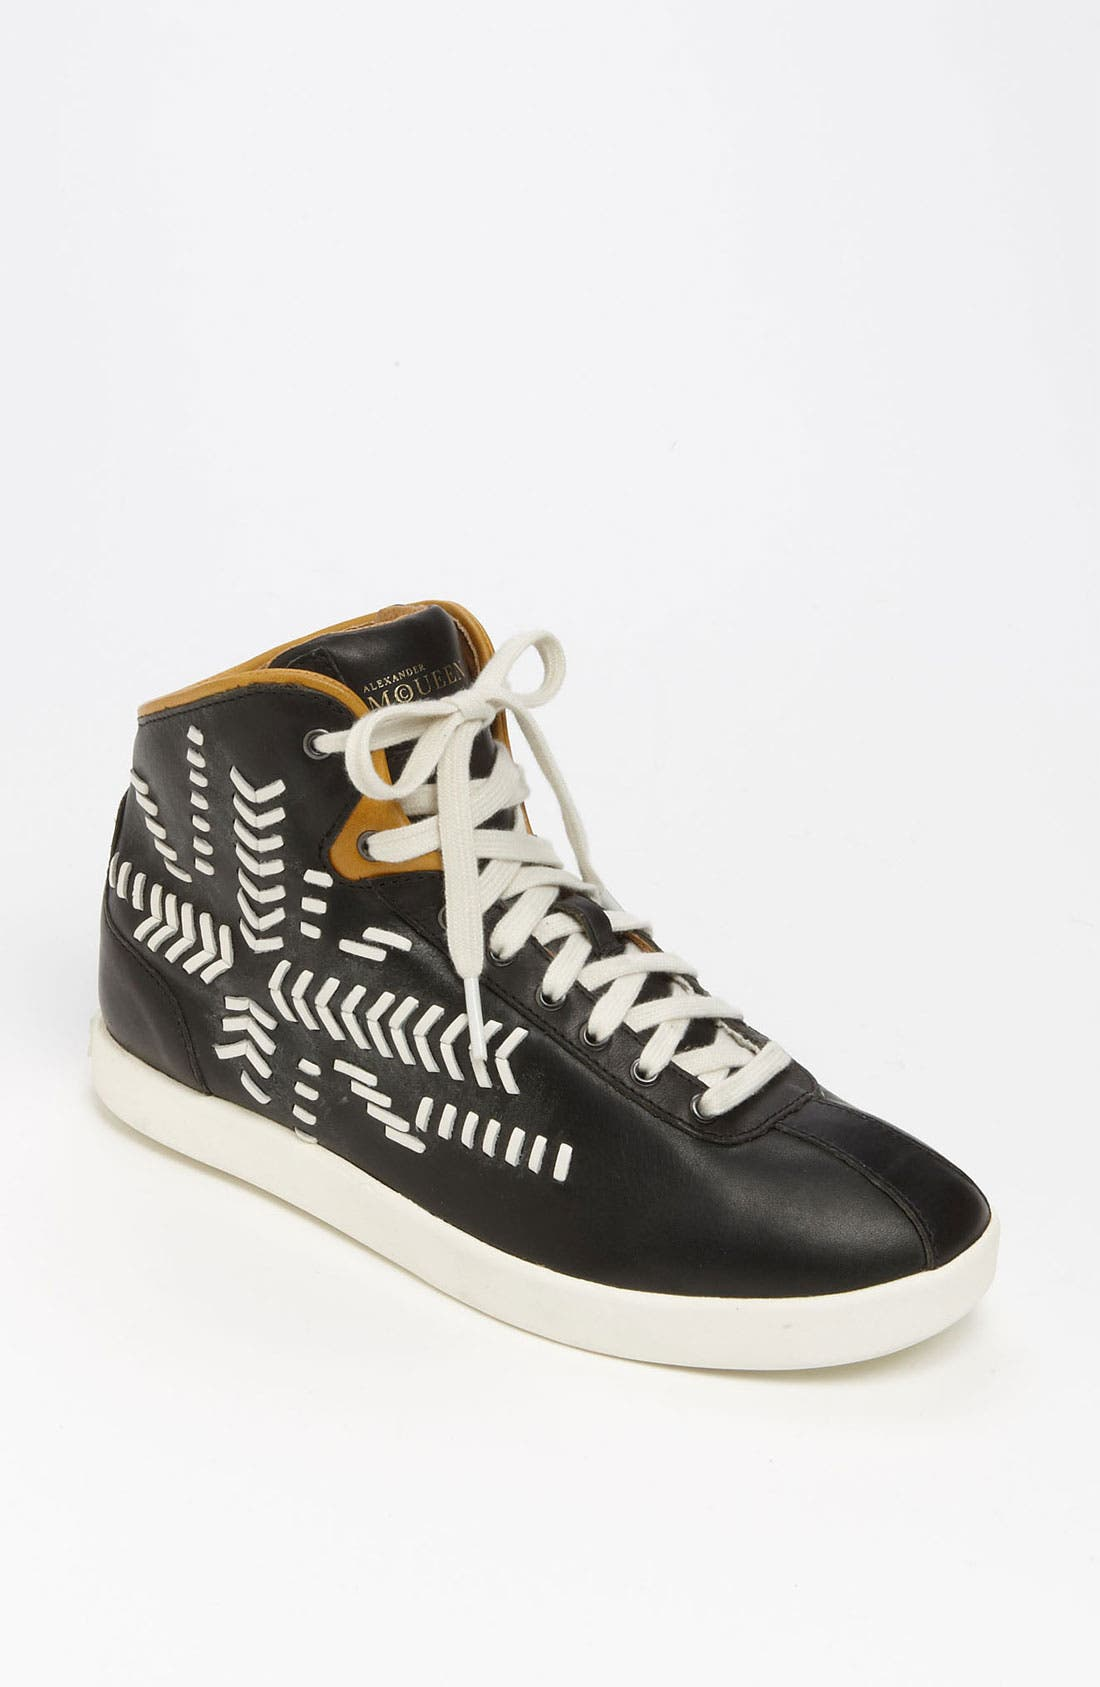 Alternate Image 1 Selected - Alexander McQueen PUMA 'Medius' Sneaker